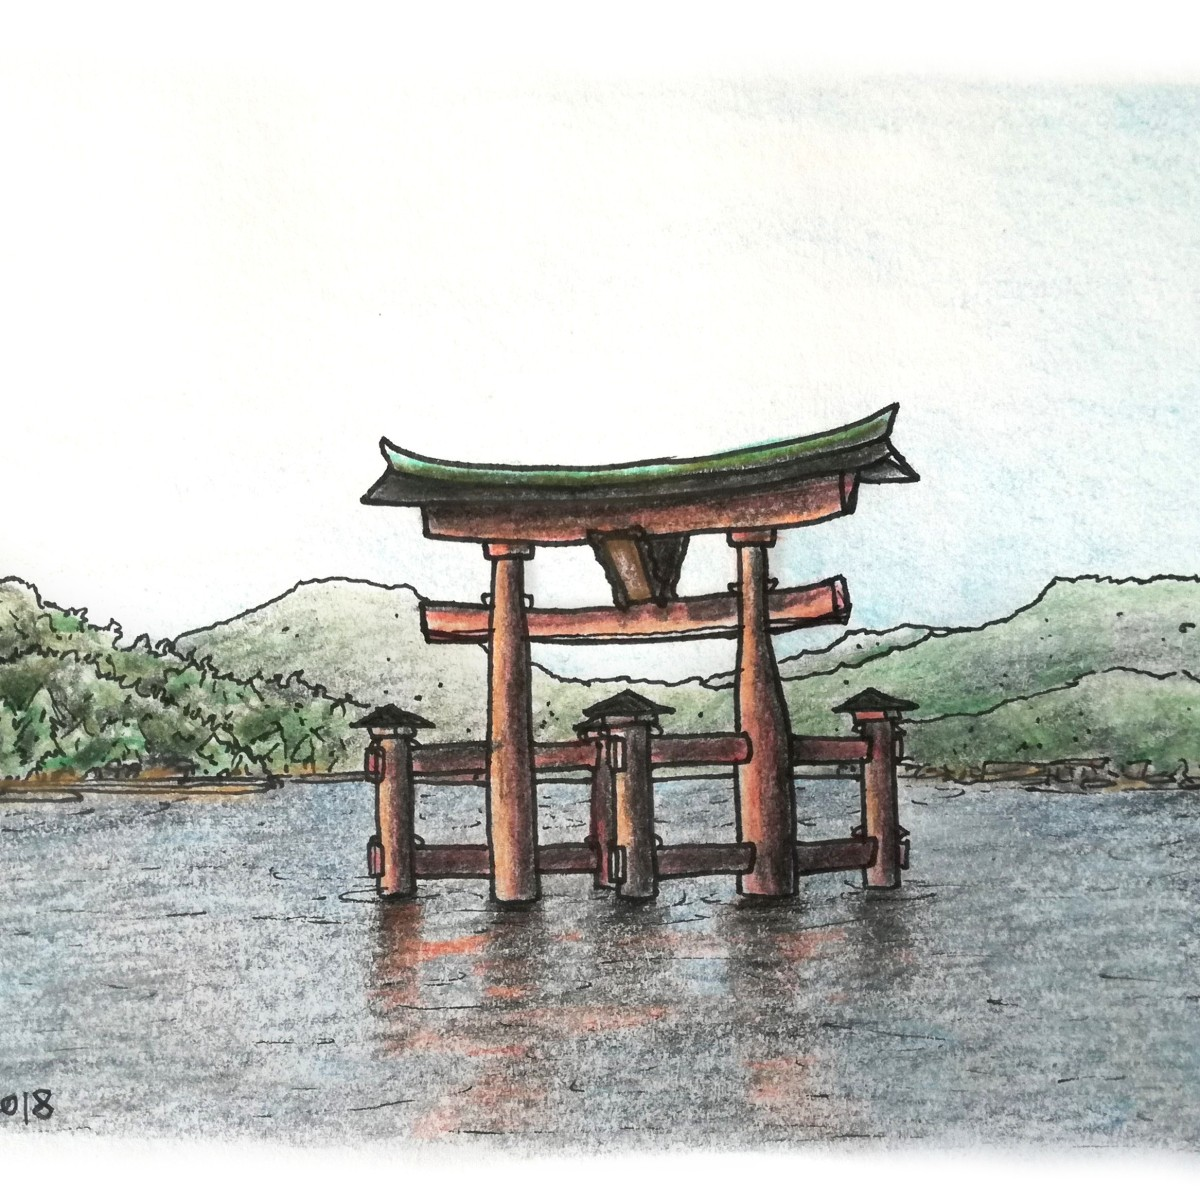 Sketch of an ancient Japanese torii gate standing in the bay